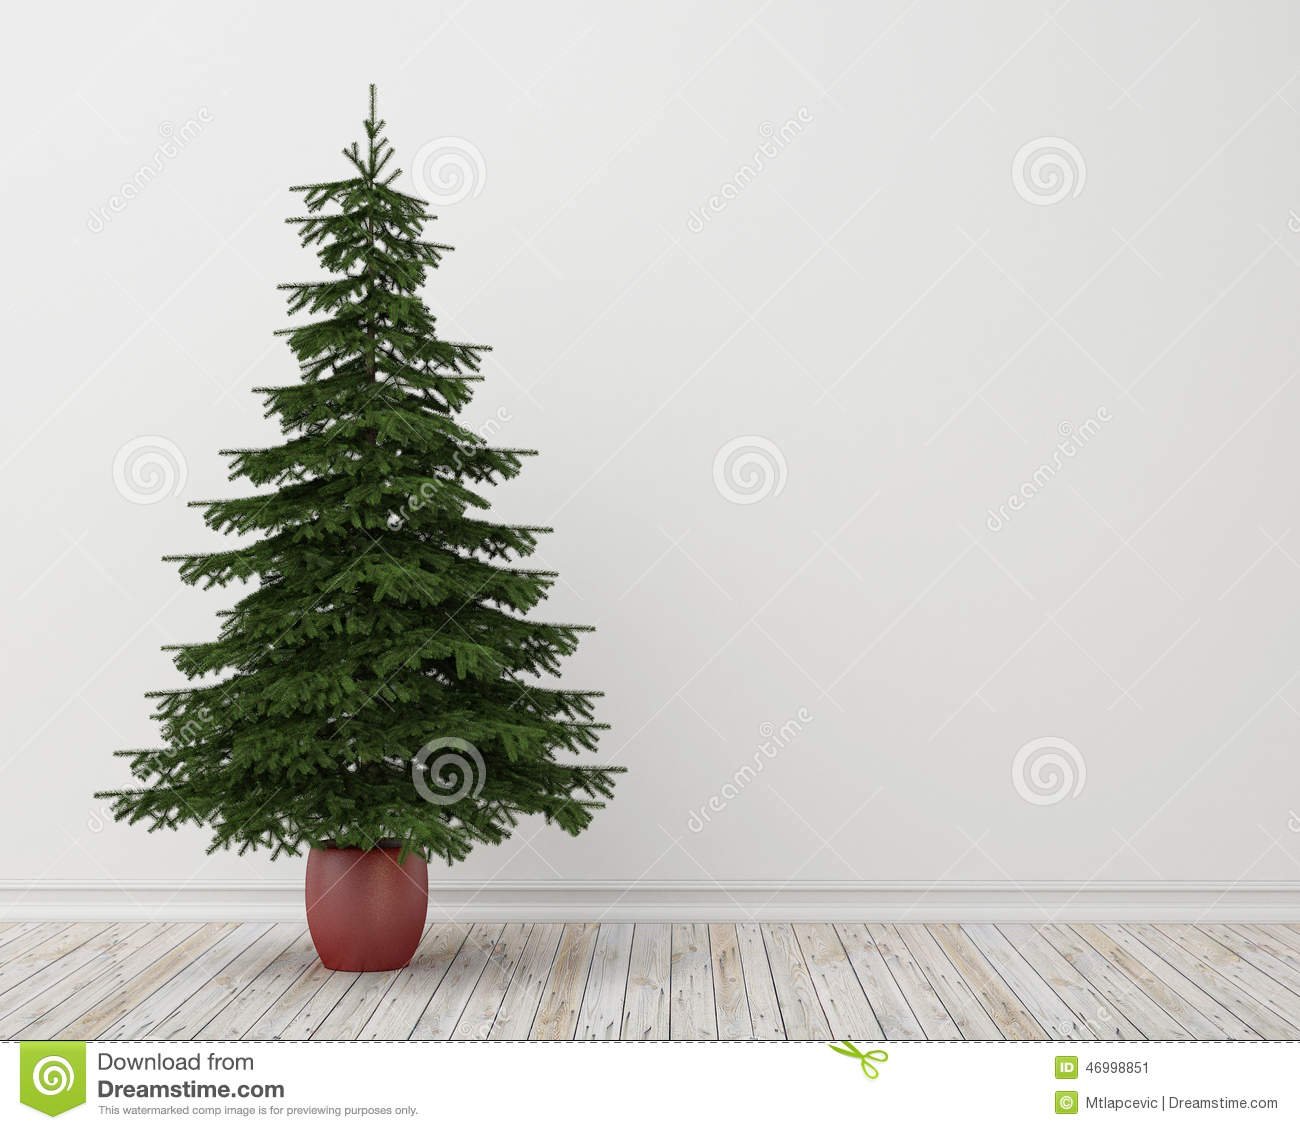 Christmas Tree In Room With Vintage Wooden Floor And White Wall Background Stock Illustration Illustration Of Room December 46998851